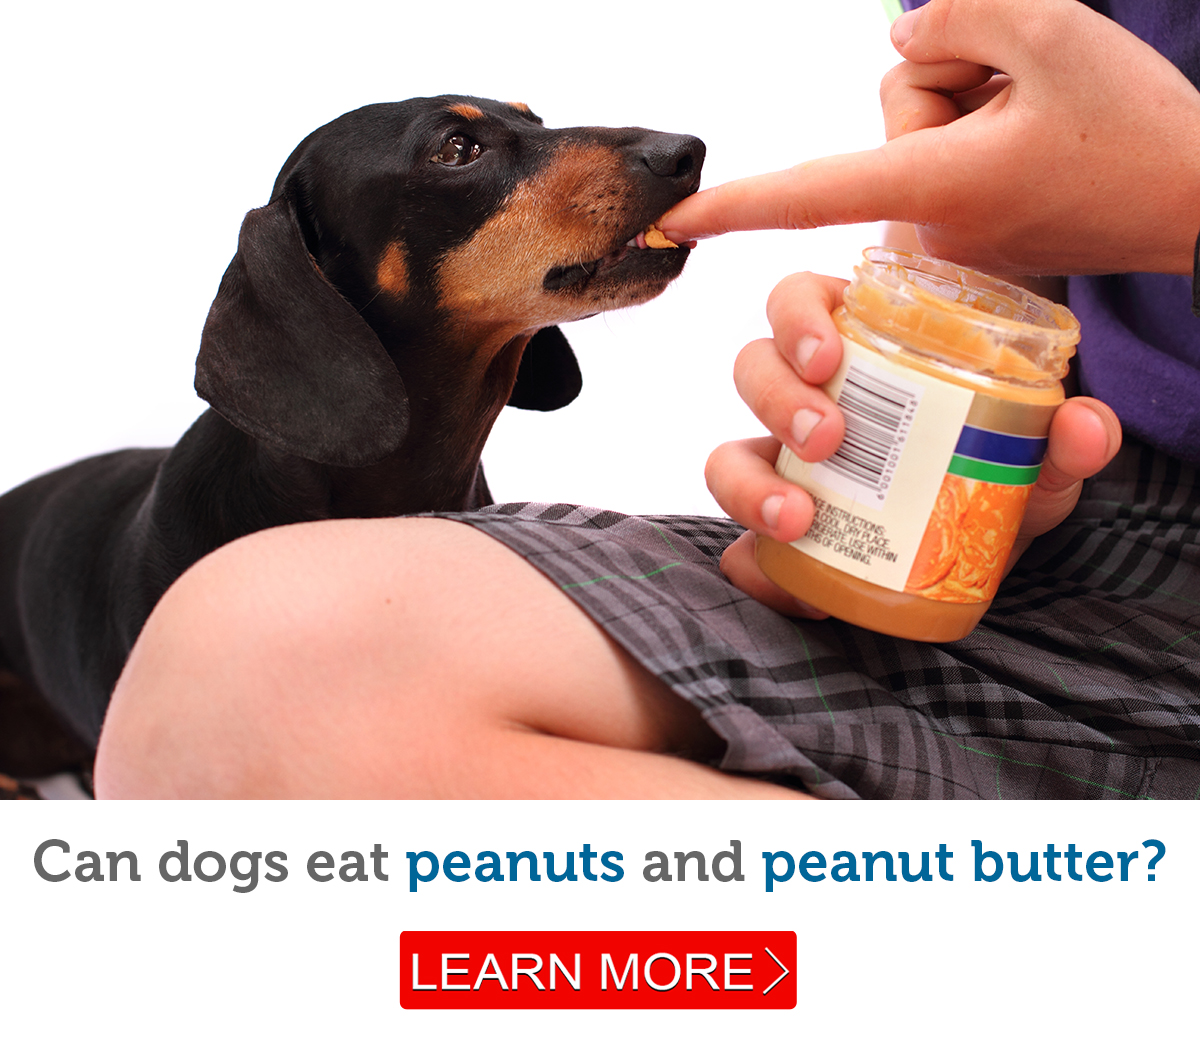 Can Dogs Eat Peanuts Safely